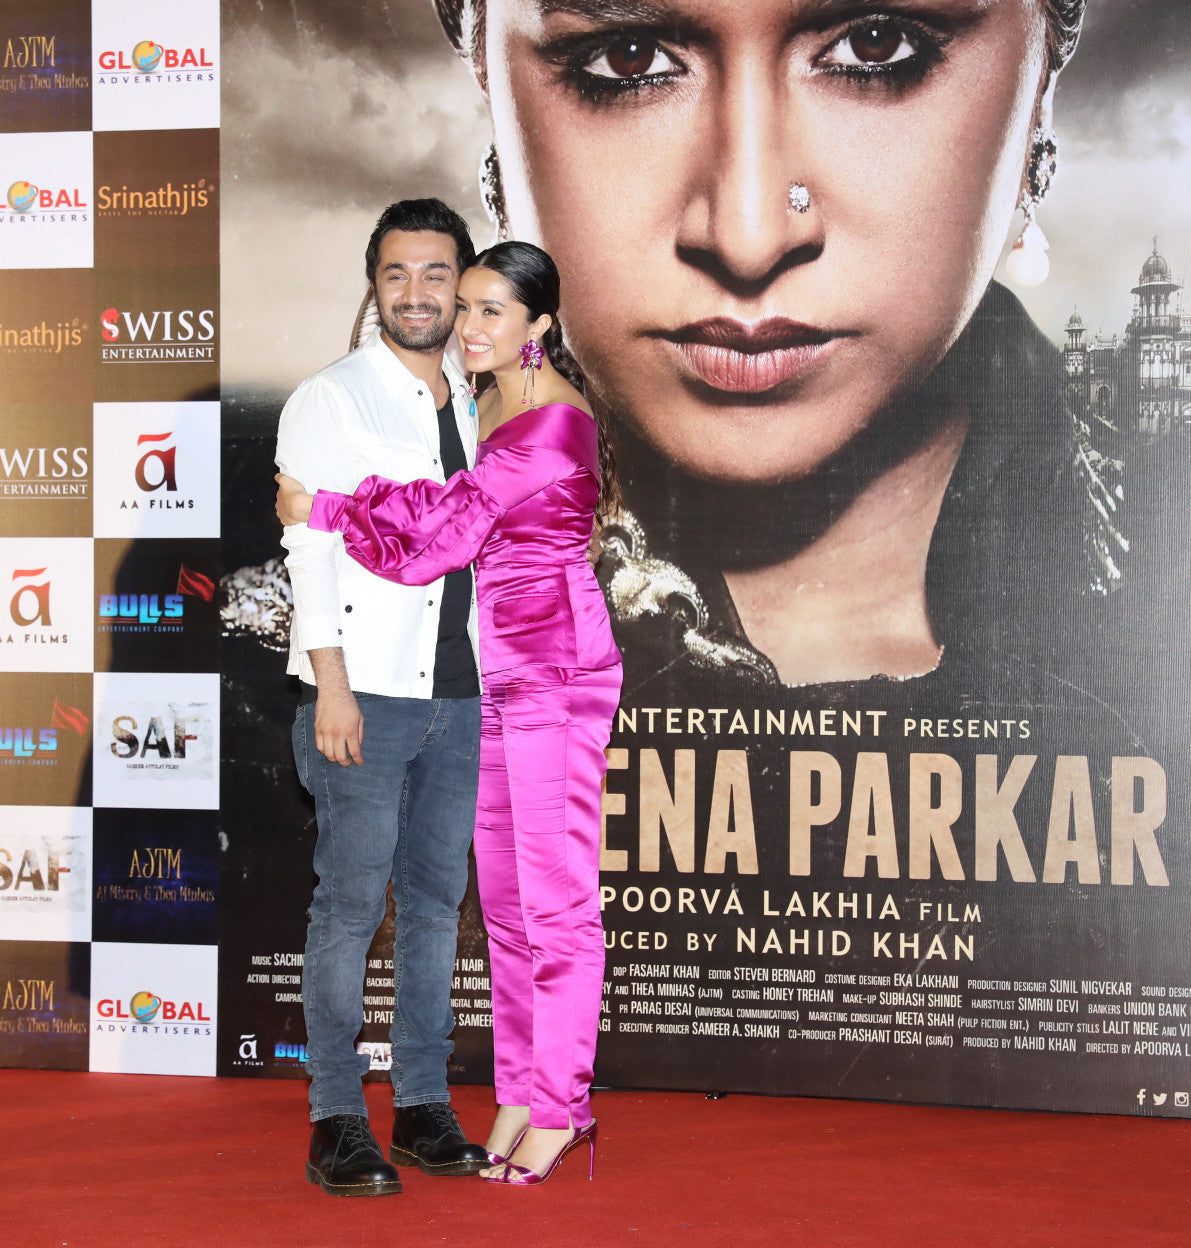 Shraddha Kapoor In Atsu Sekhose's Pantsuit At The Trailer Launch Event Of 'Haseena Parkar'